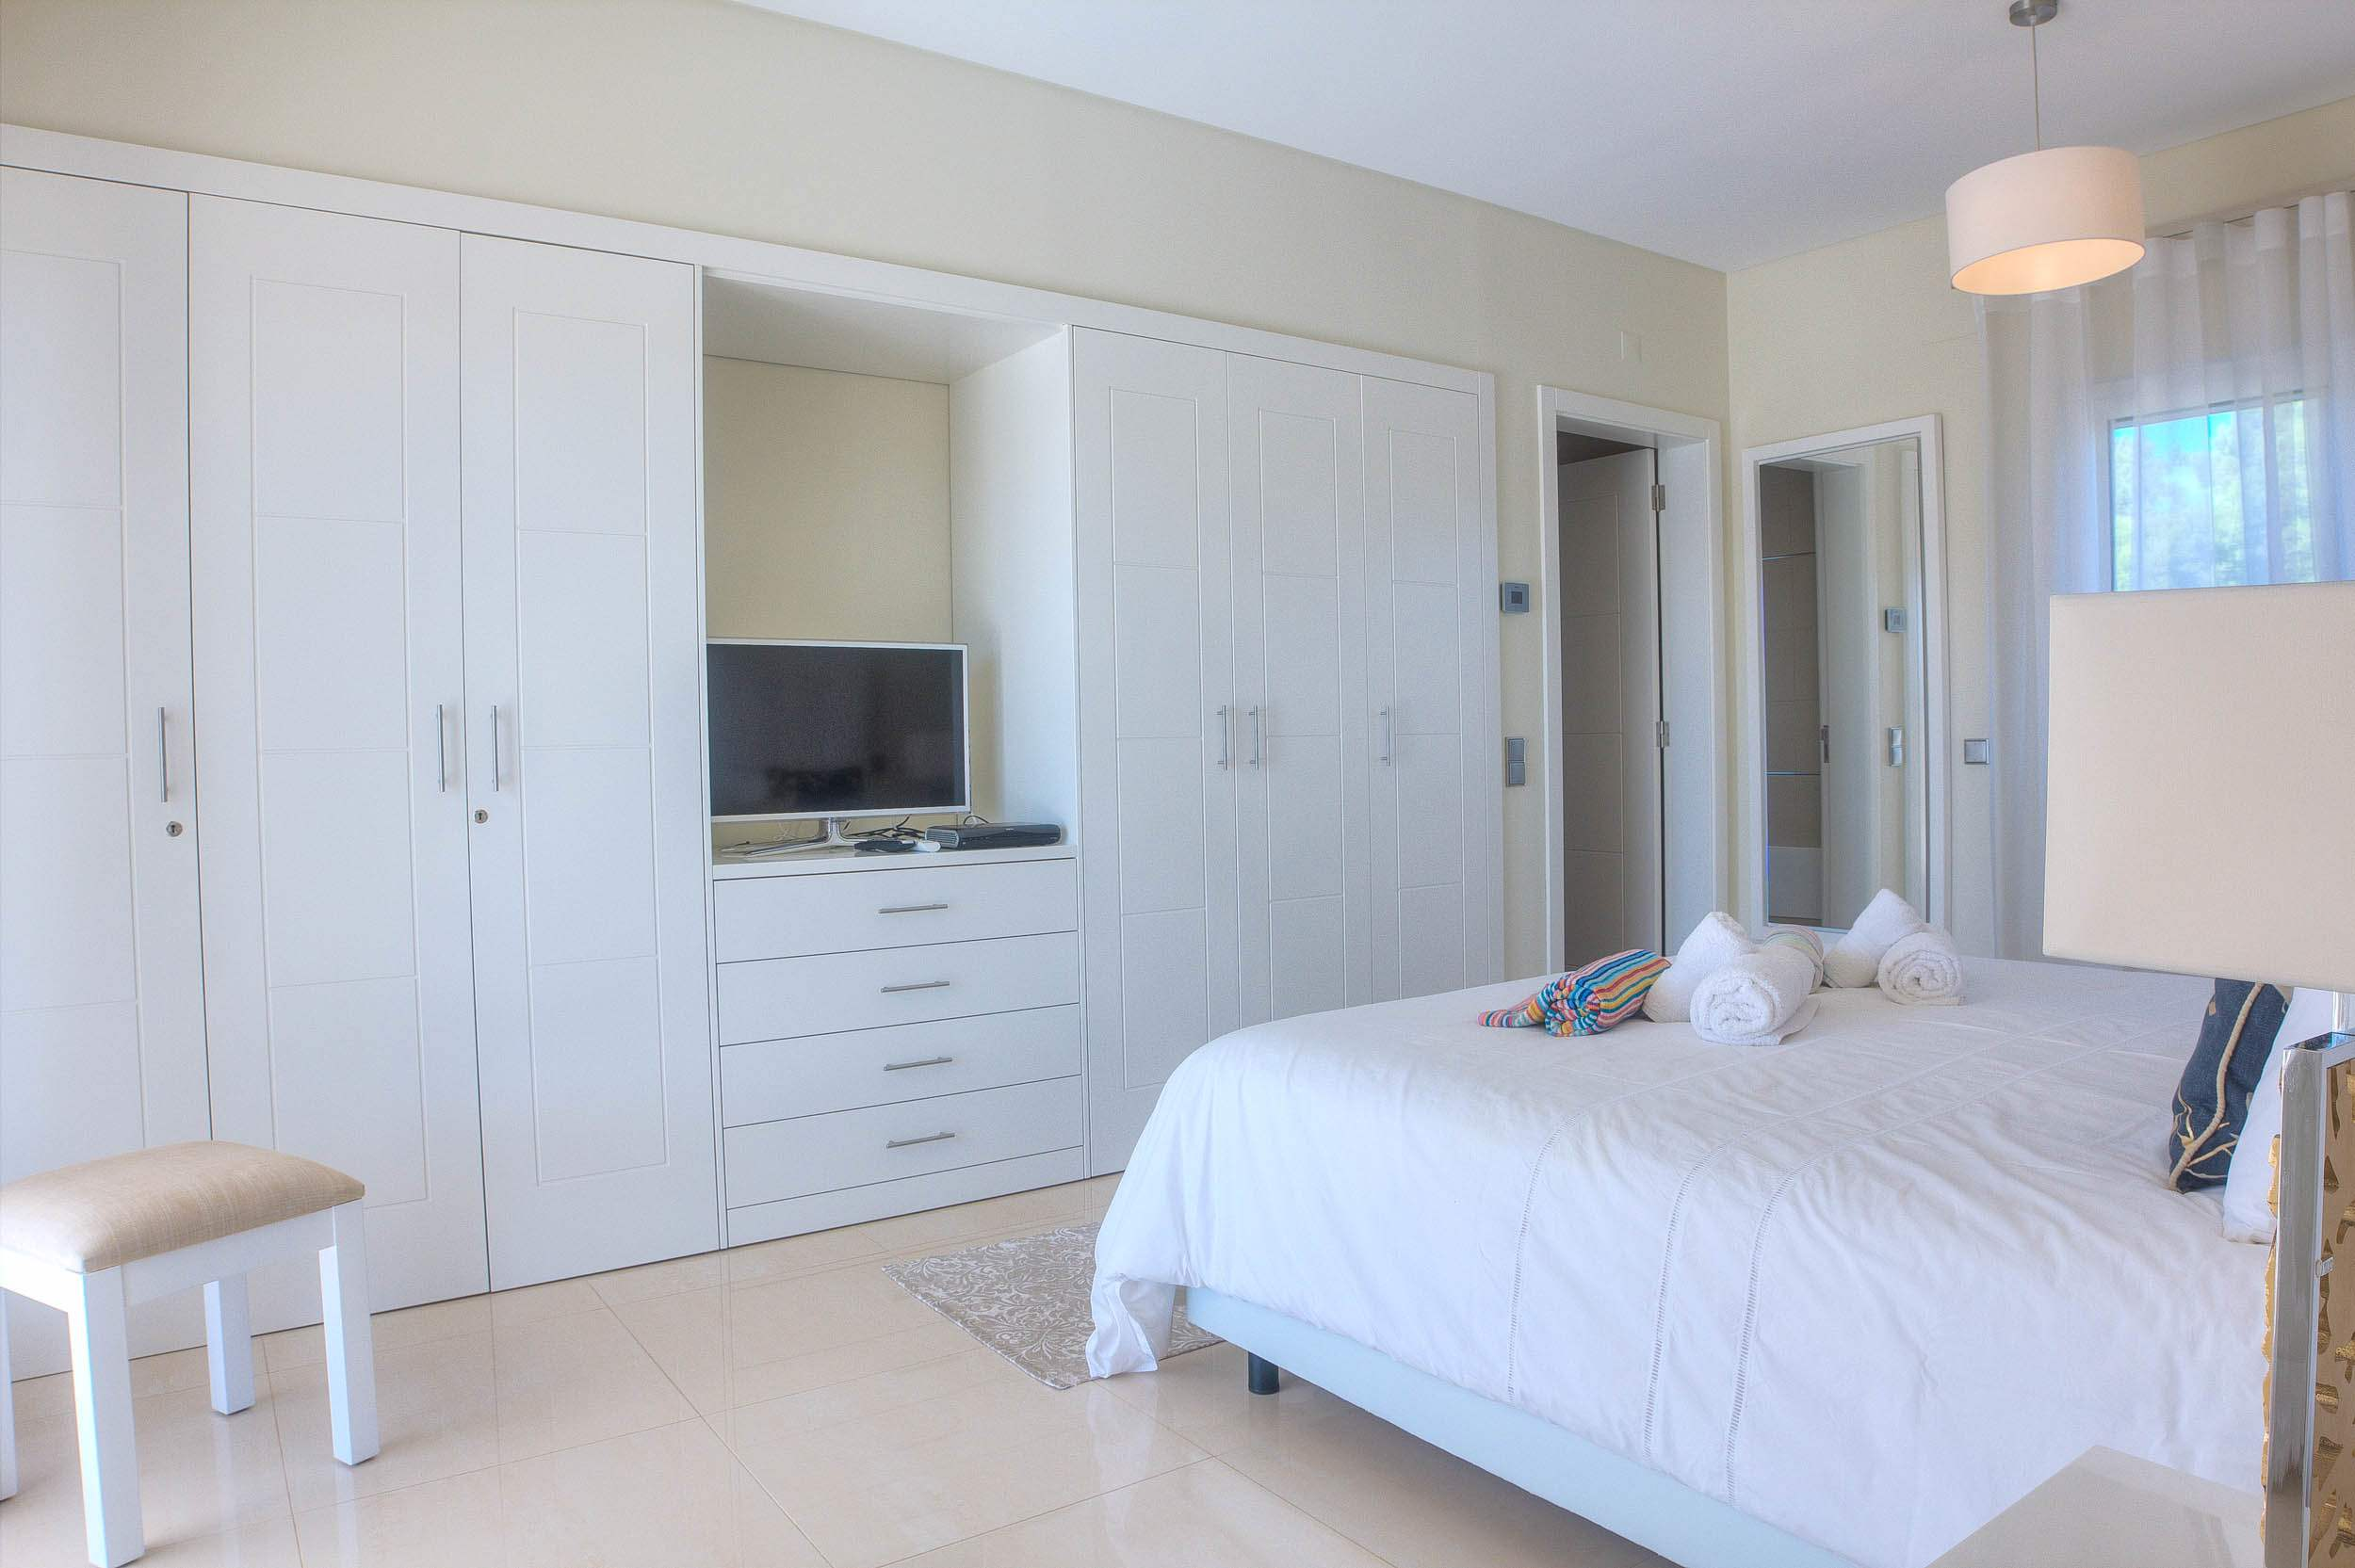 Villa Vida Doce, 6 bedroom villa in Vilamoura Area, Algarve Photo #24